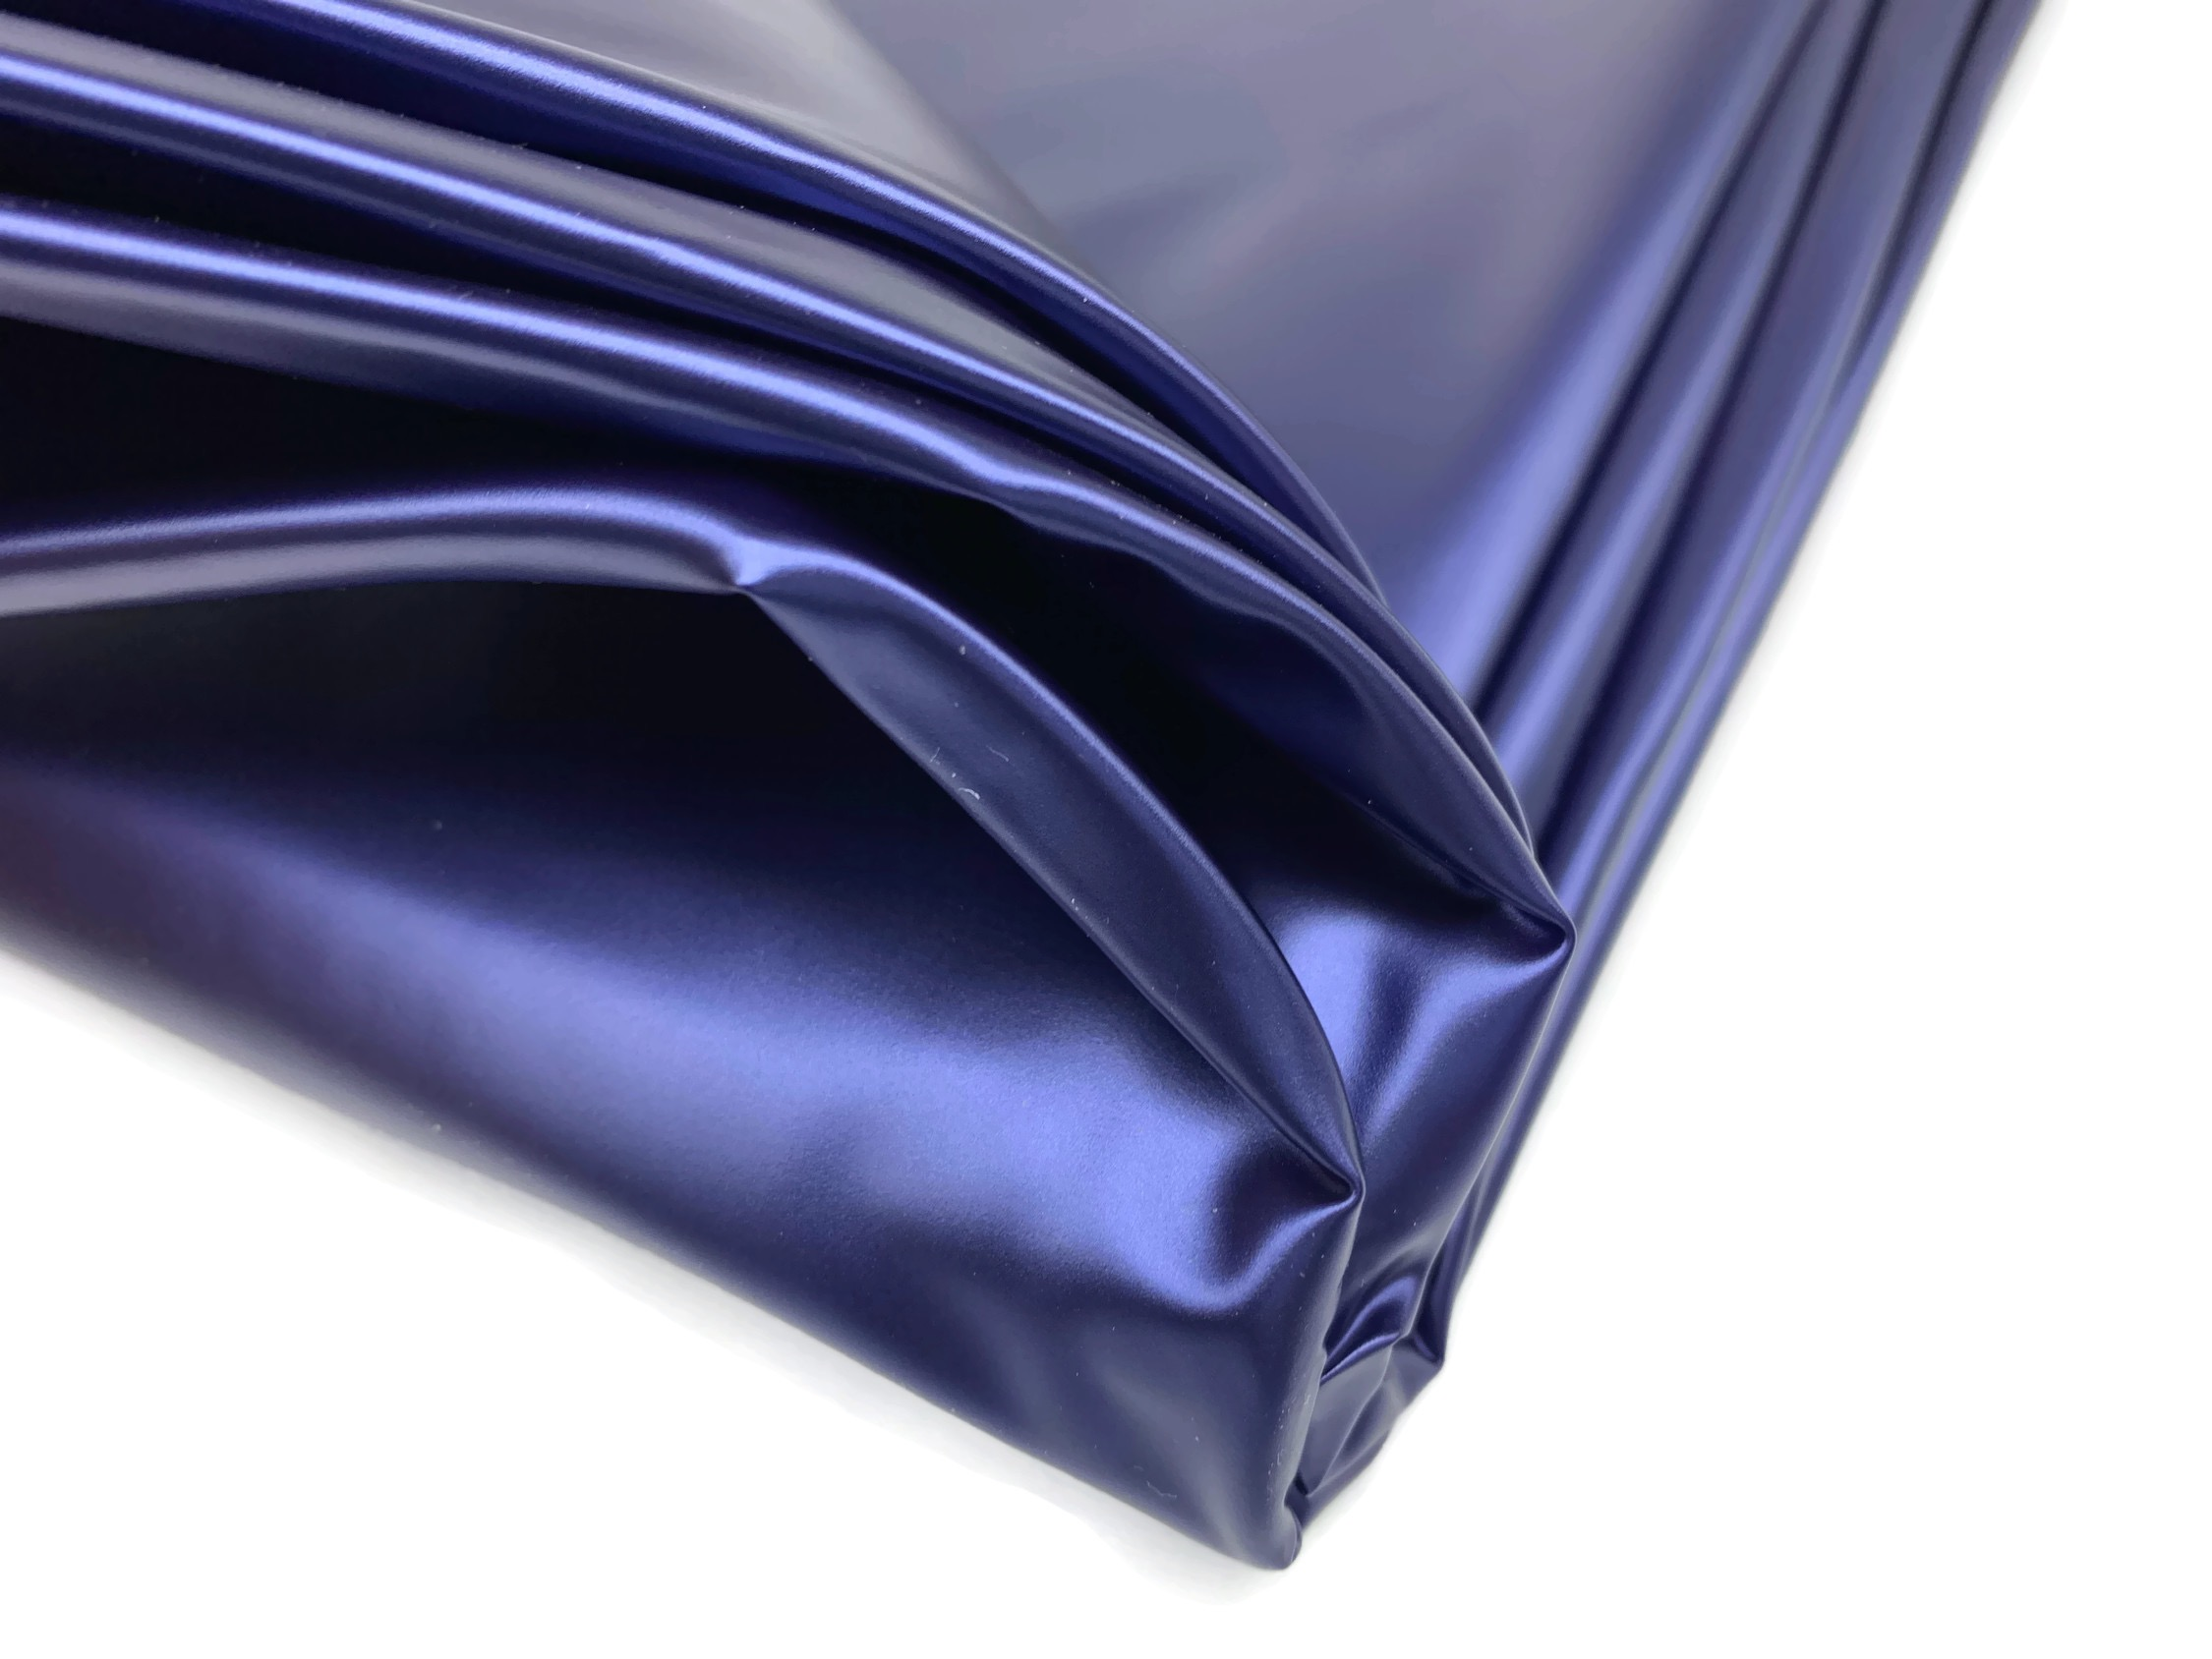 Latex Bettwäsche Sexlaken Wasserdicht Bettlaken In Blau 180x240cm Metallic Optik Kein Latex